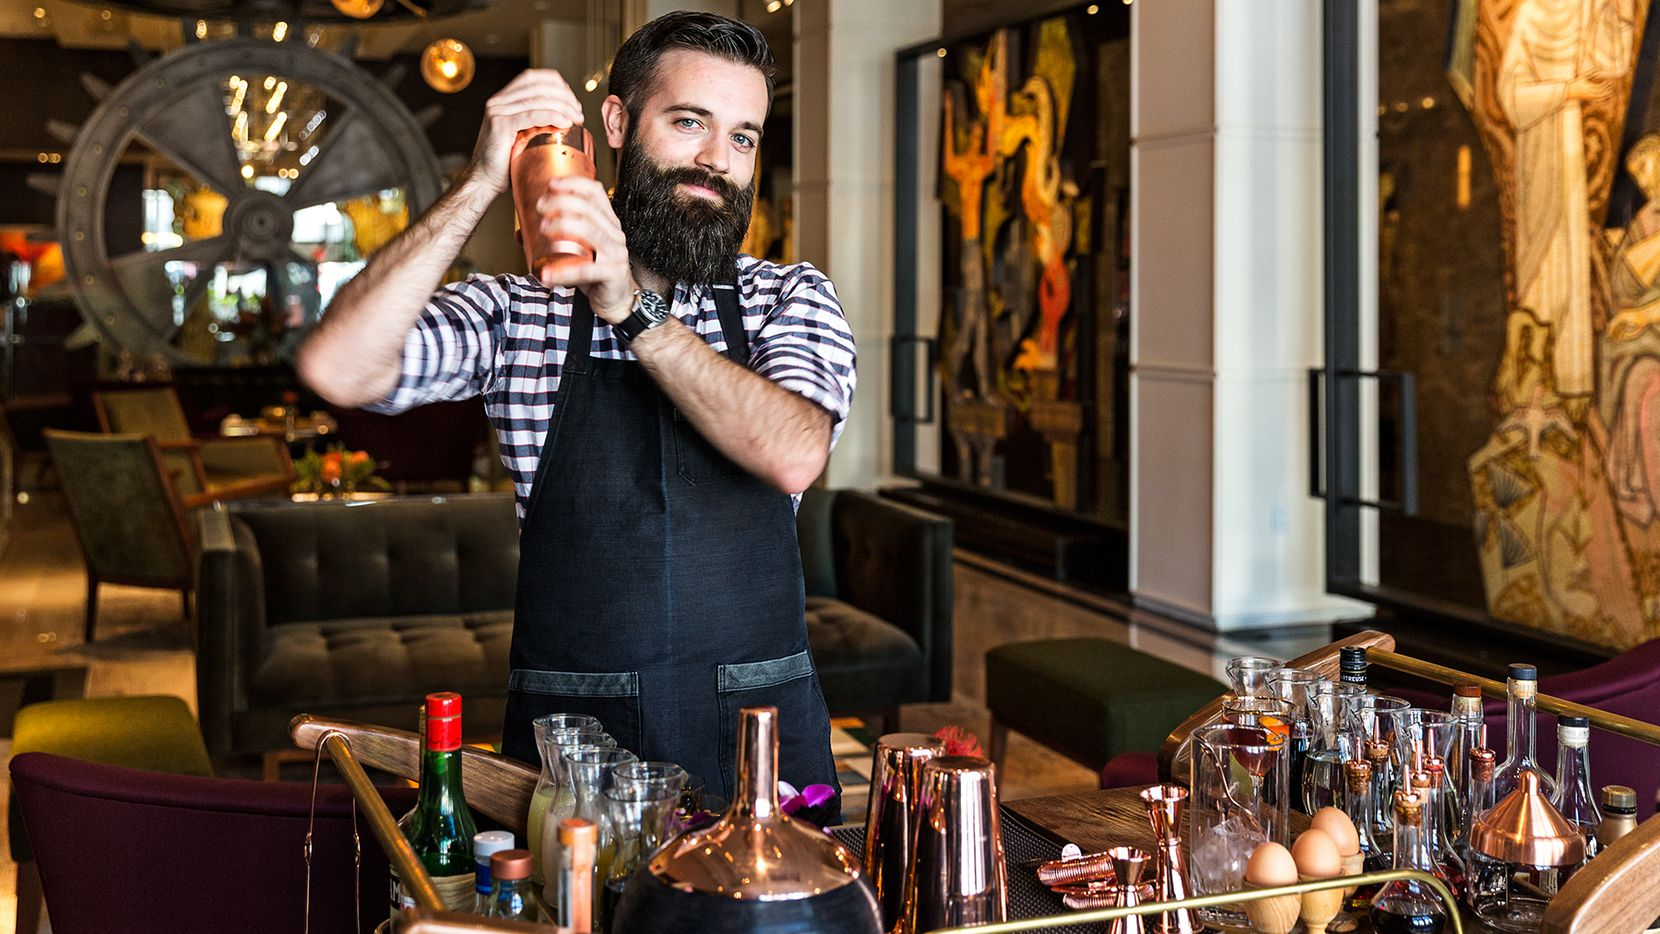 Ian Reilly, 27, beverage supervisor at the Joule hotel